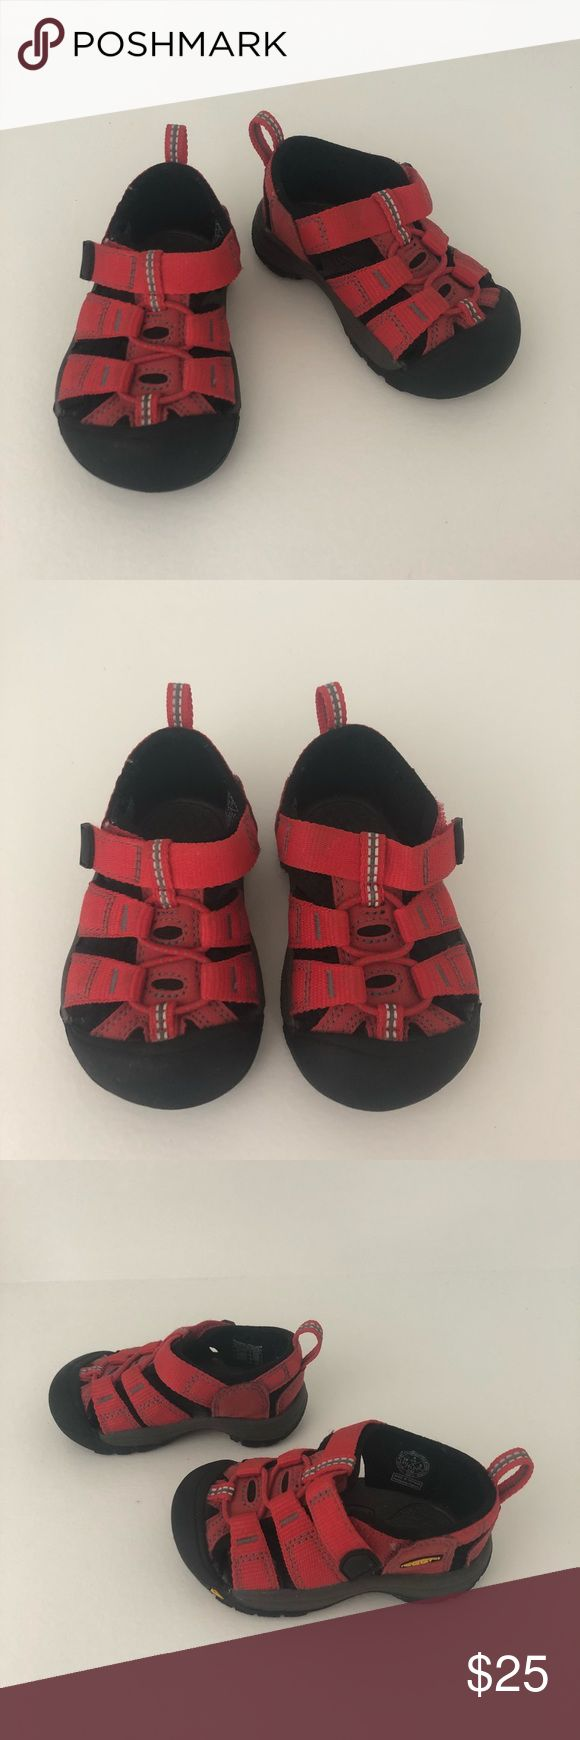 EUC Keen Baby Water Shoes Size 4 Red Excellent used condition baby / toddler size 4 keen sandals. No flaws to note, worn maybe once as they were a gift when she had grown to be a size 5. Great for spring and summer or by the pool. Comes from a smoke free, pet free home. Keen Shoes Baby & Walker